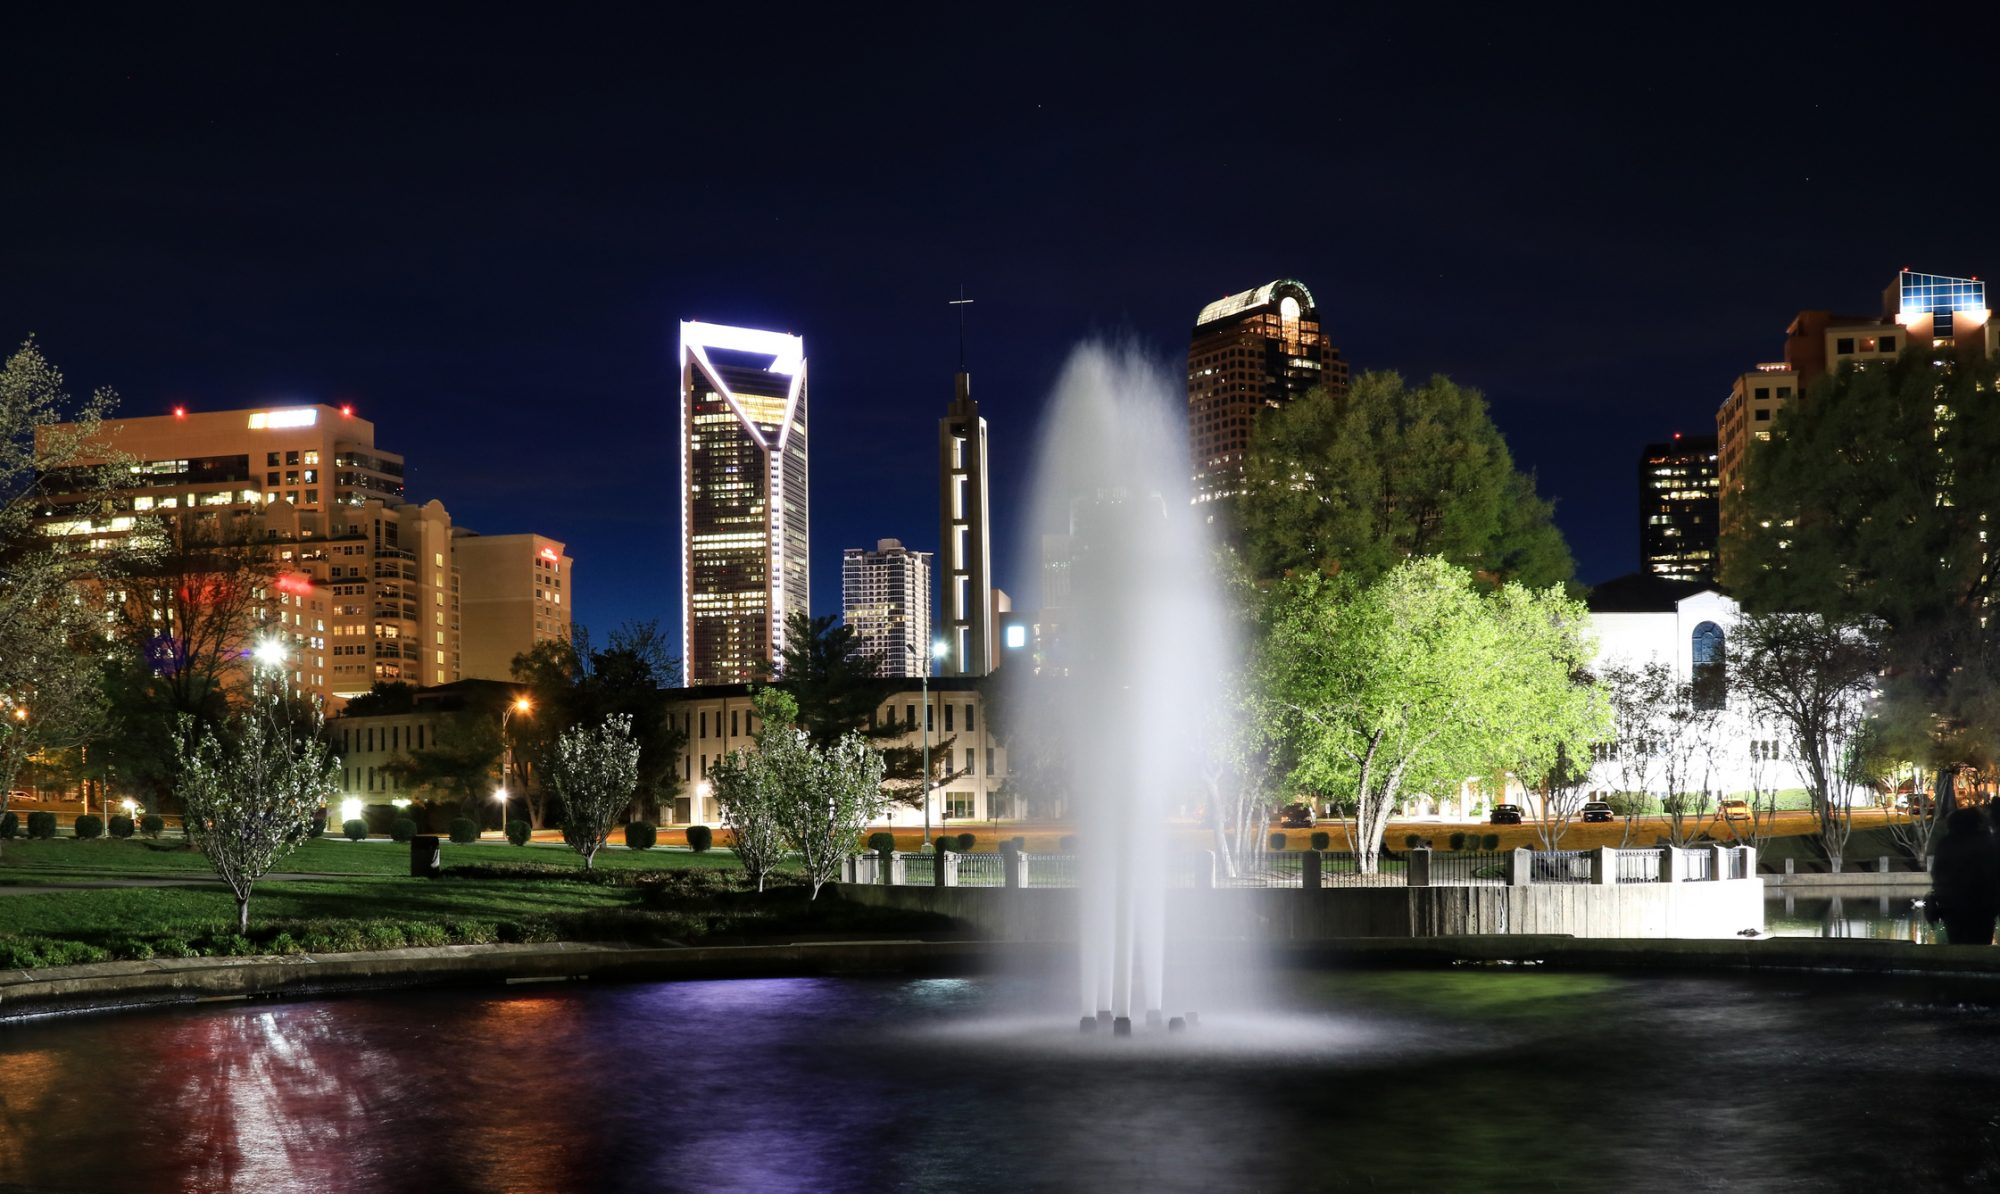 15. Charlotte, North Carolina